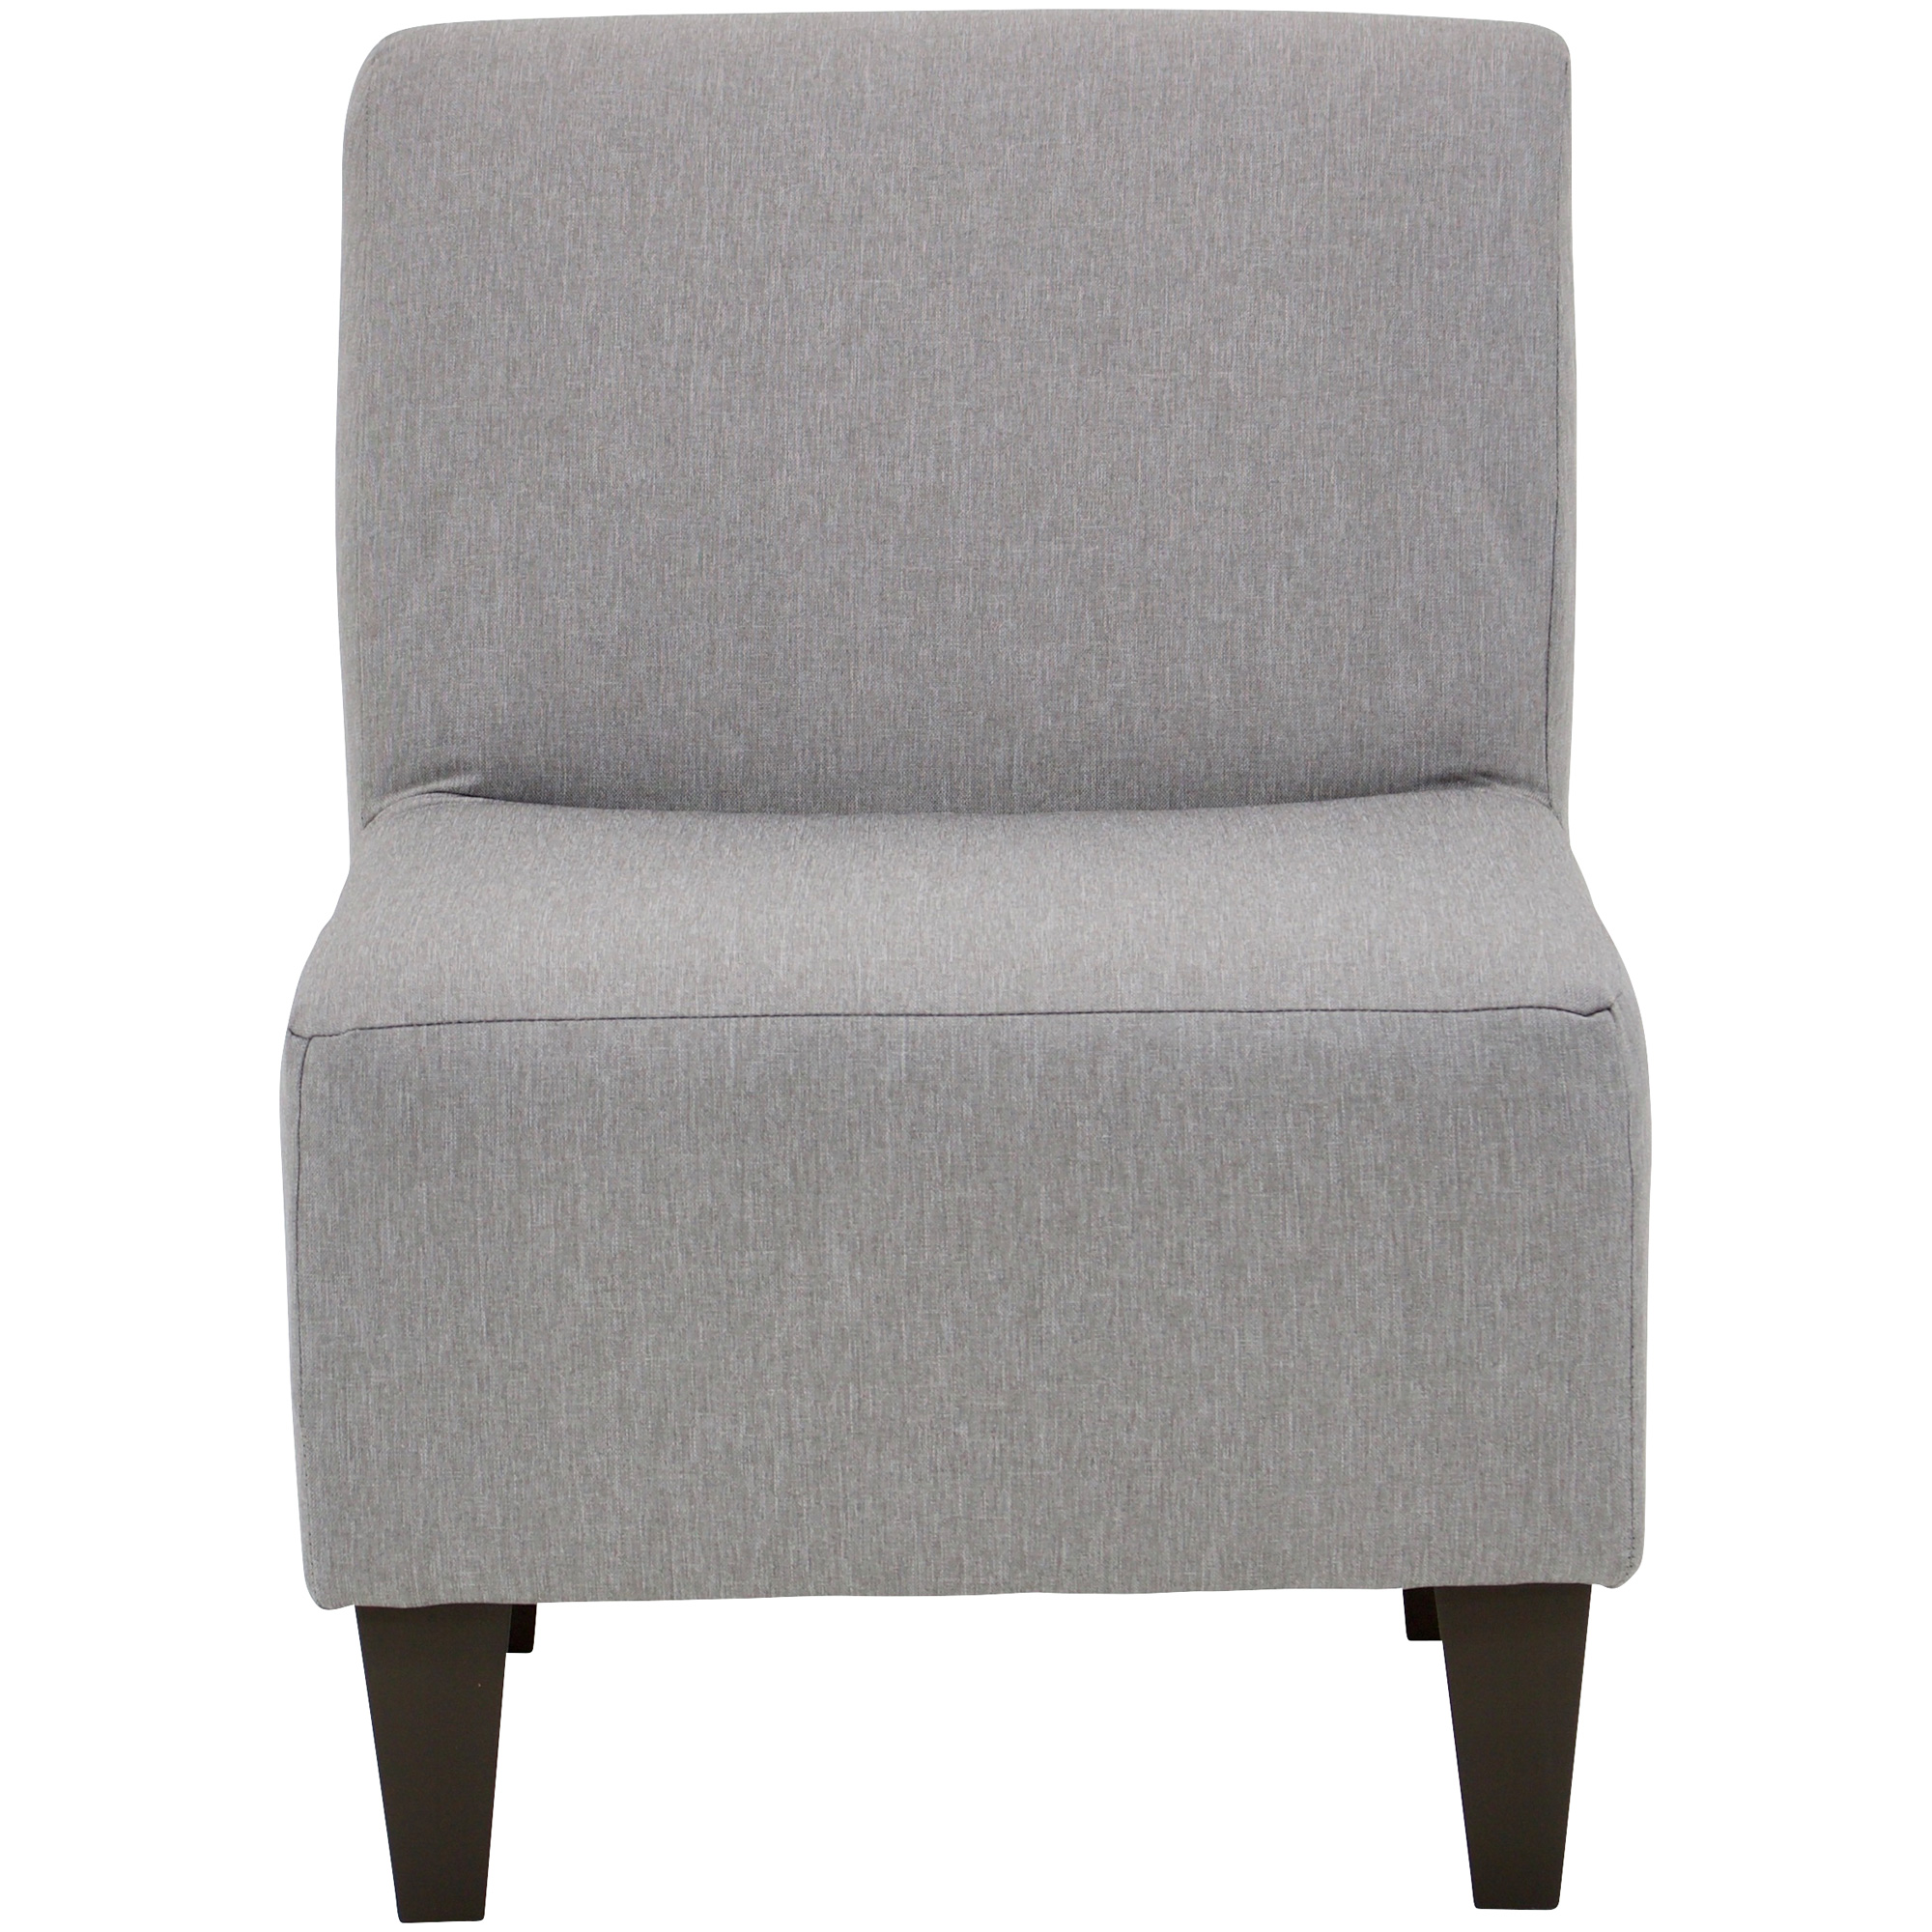 Overman | Amanda Ash Accent Chair